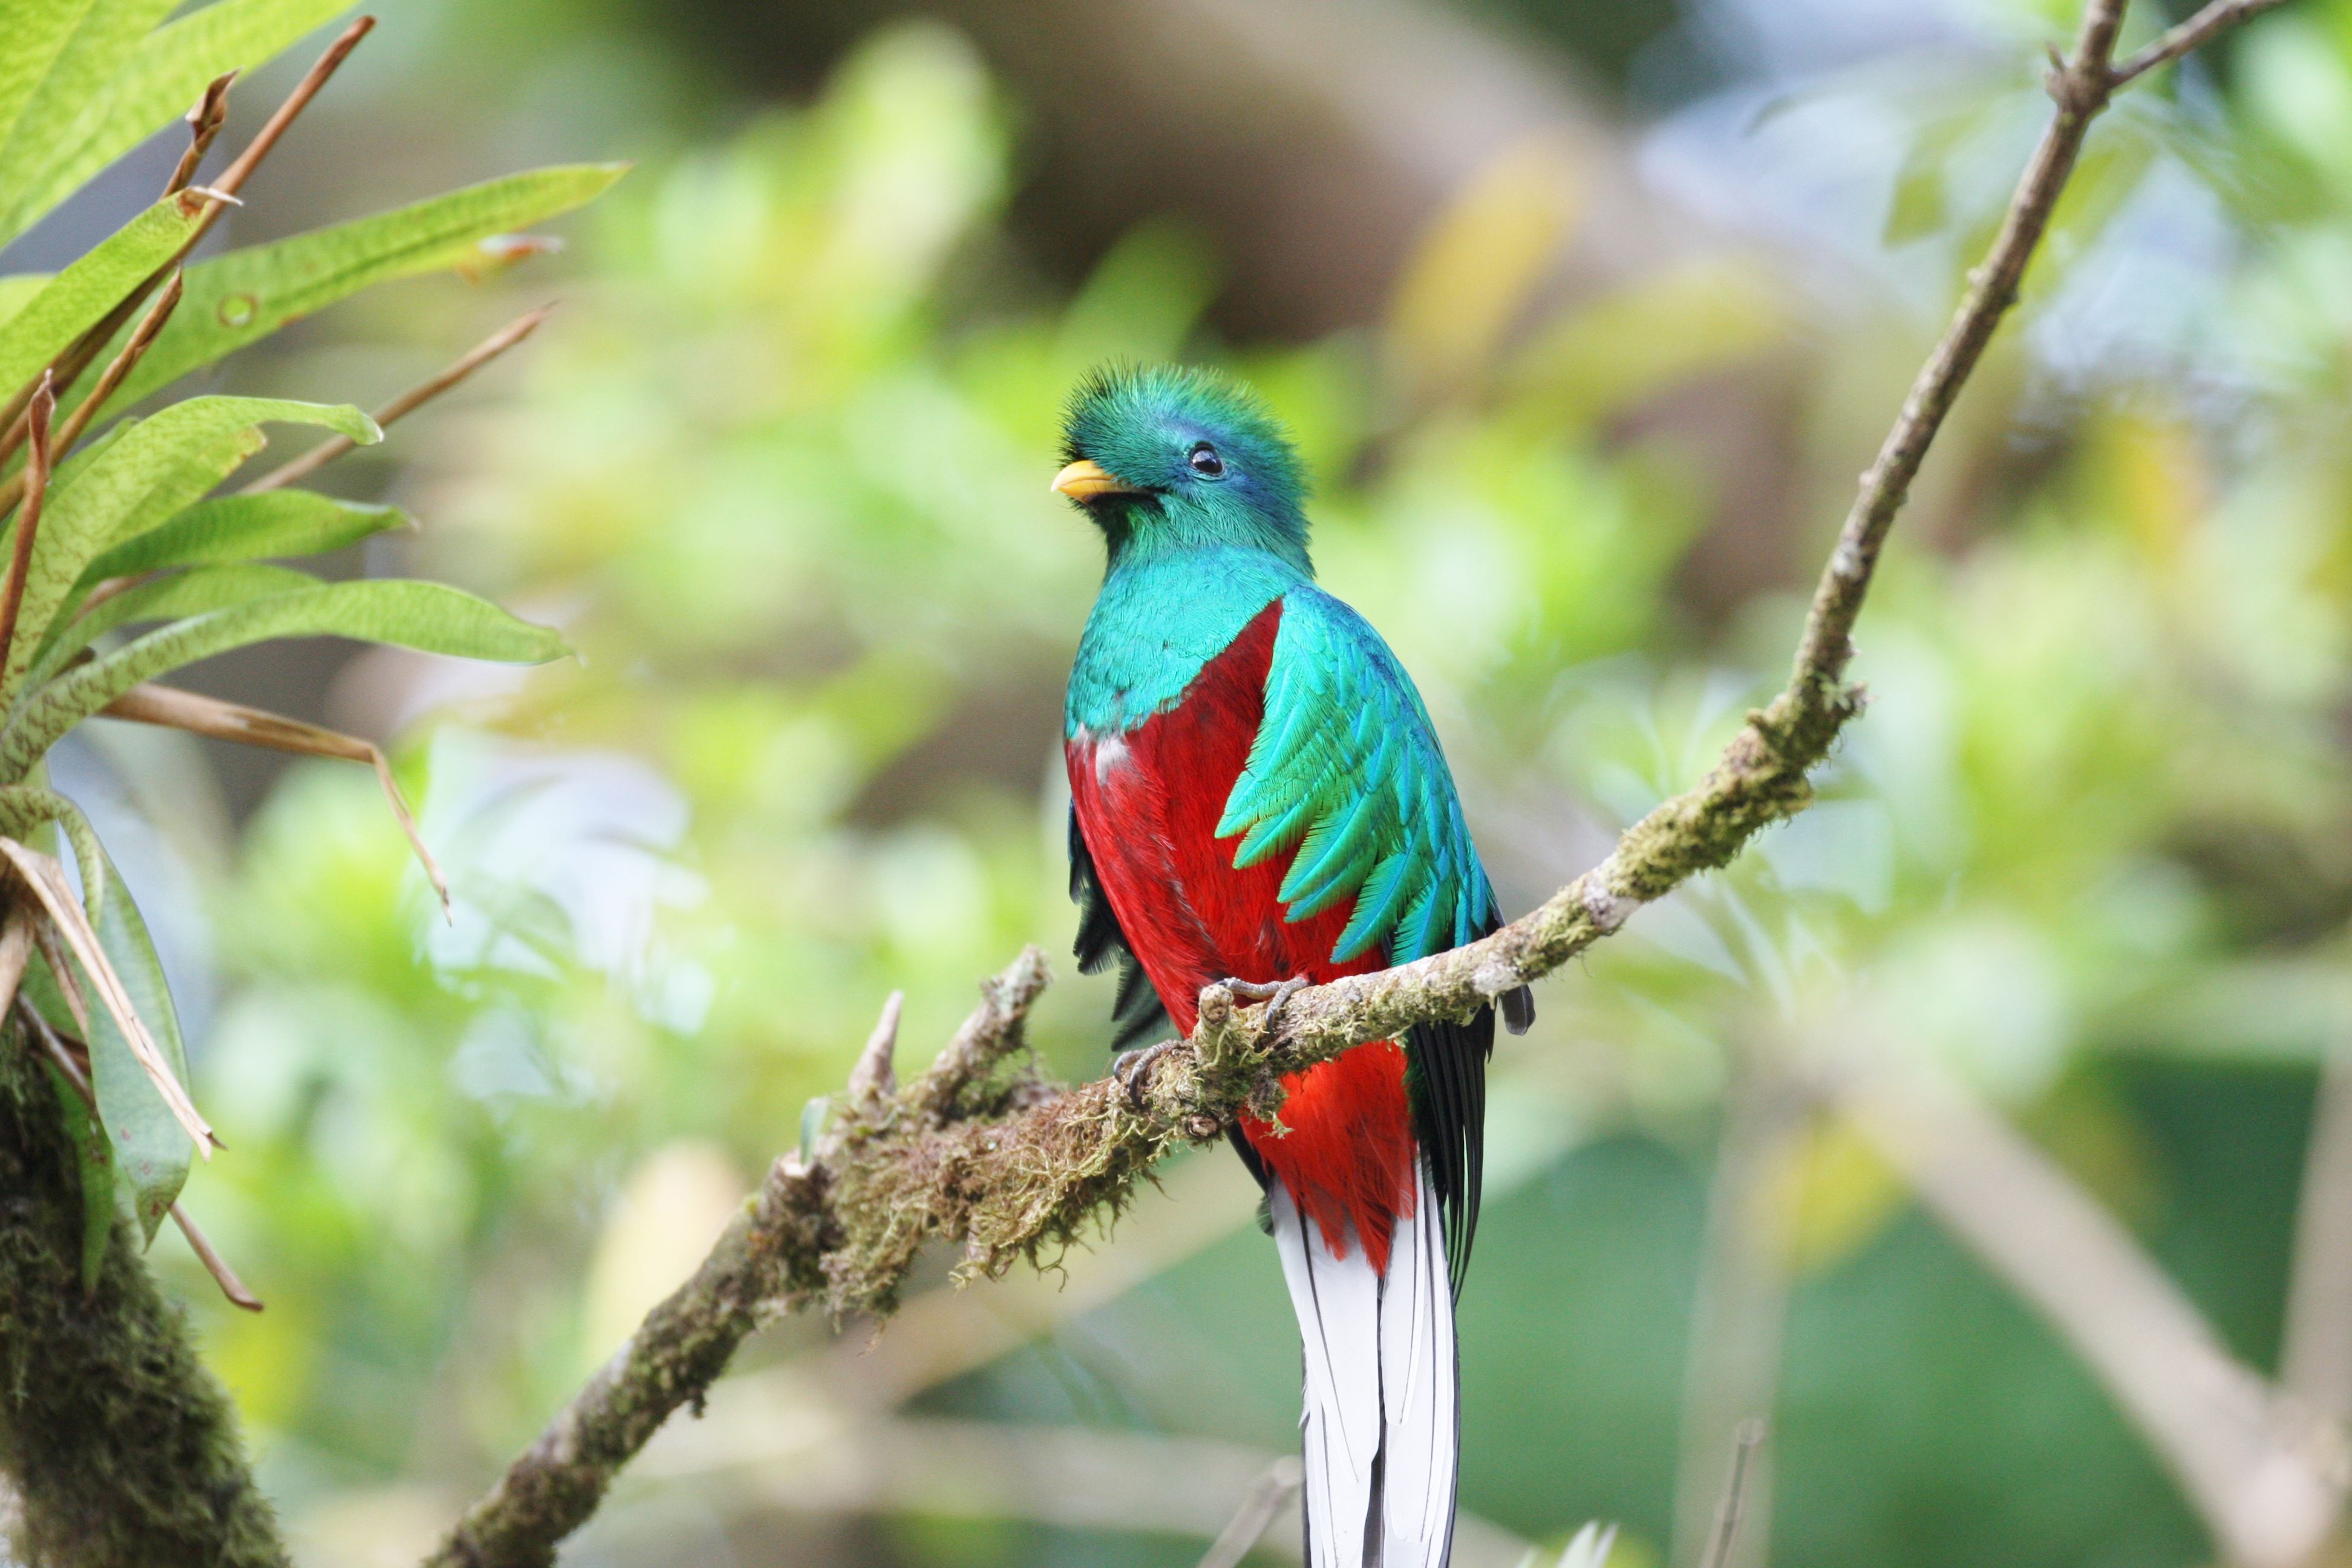 The Path of the Quetzals